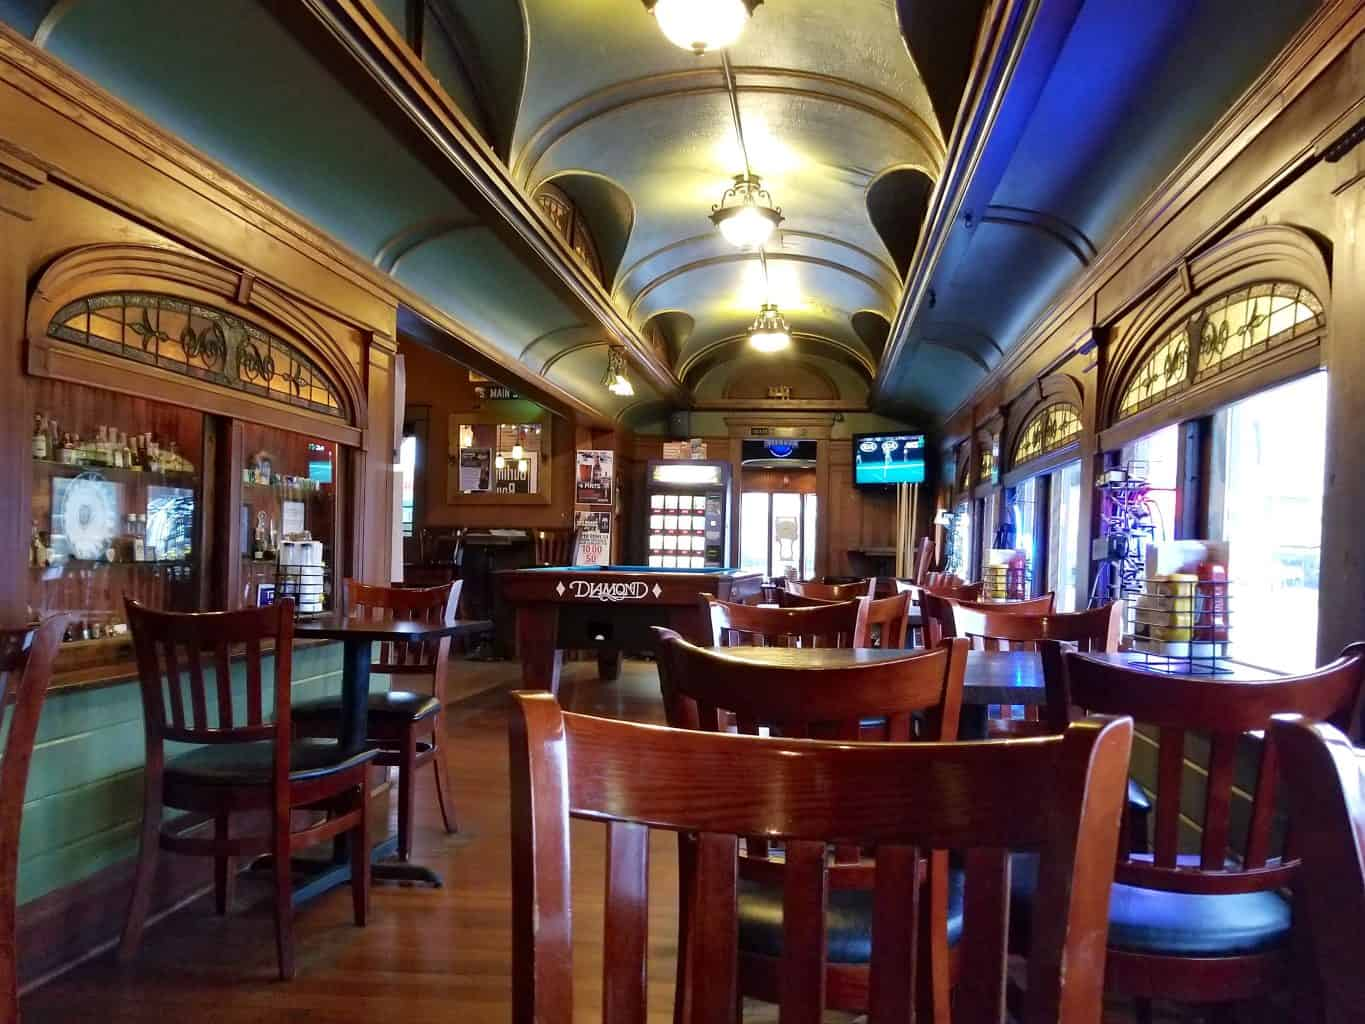 Eating Lunch in the President's Train Railcar #4438 - Bull Moose Bar & Grille Sandwich Illinois